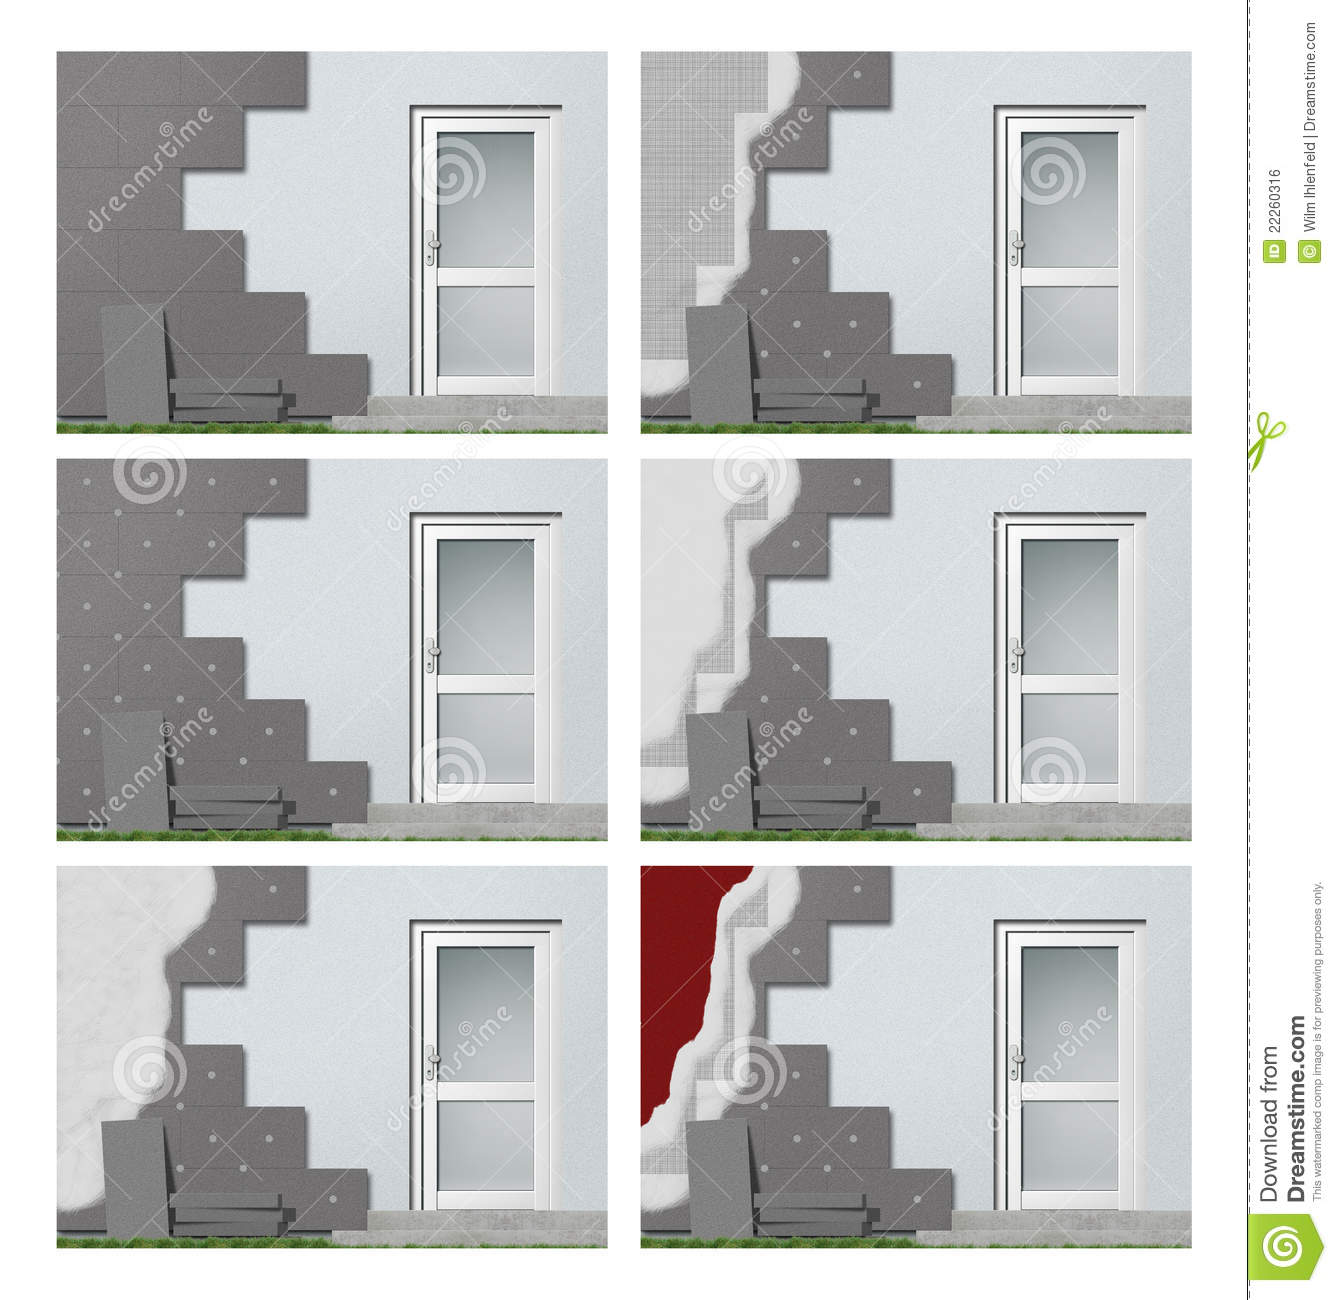 Facade insulation step by step royalty free stock image - Polystyrene insulation step by step ...